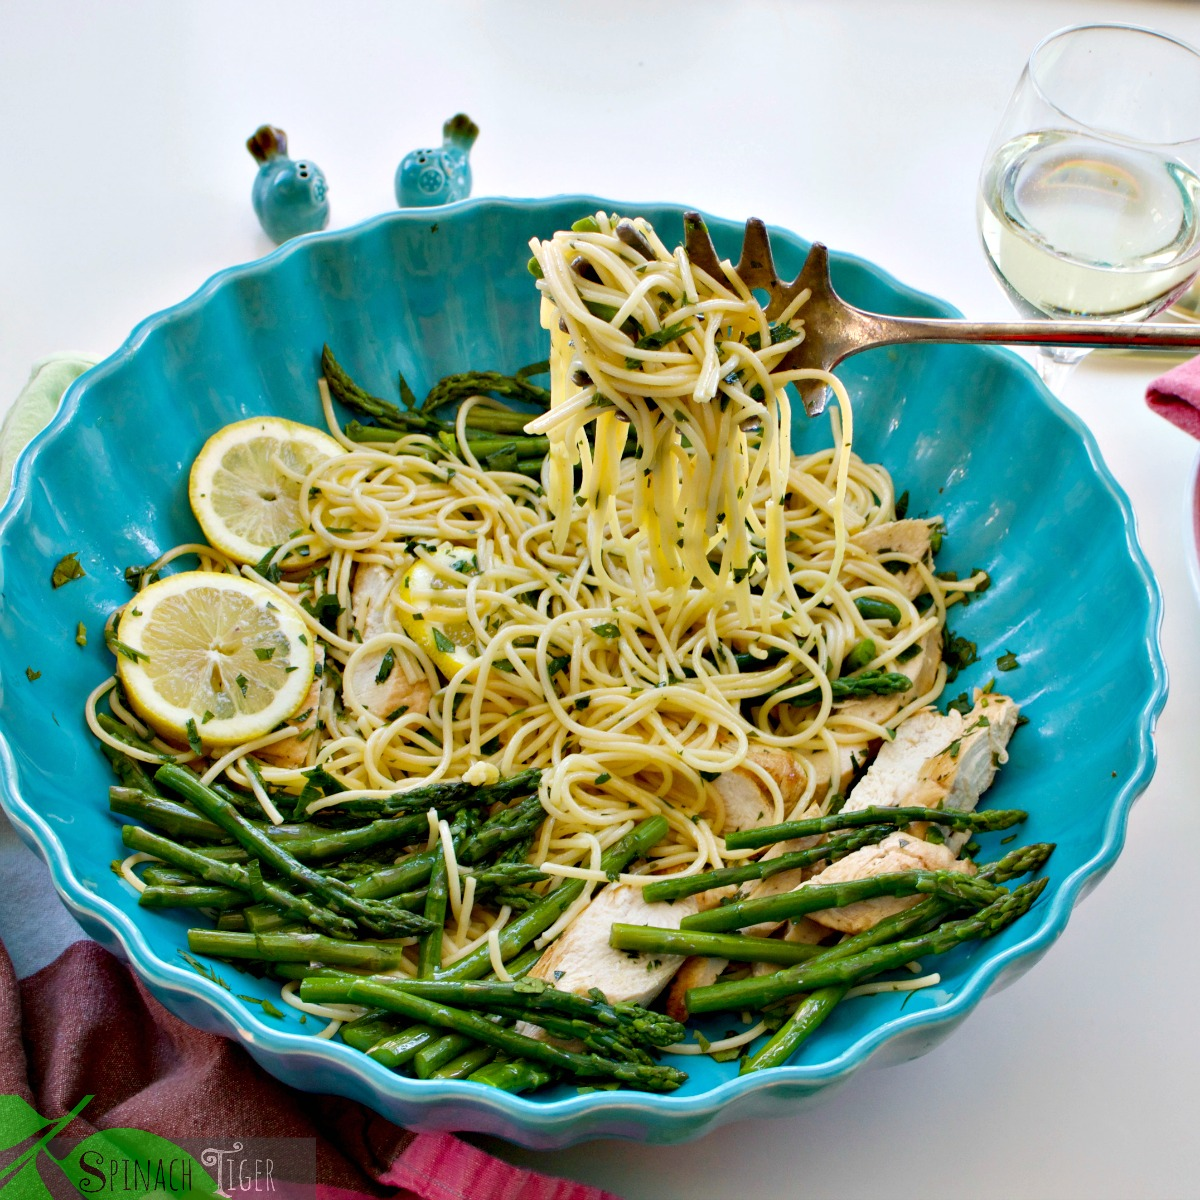 How to Make Chicken Asparagus Pasta Recipe from Spinach Tiger